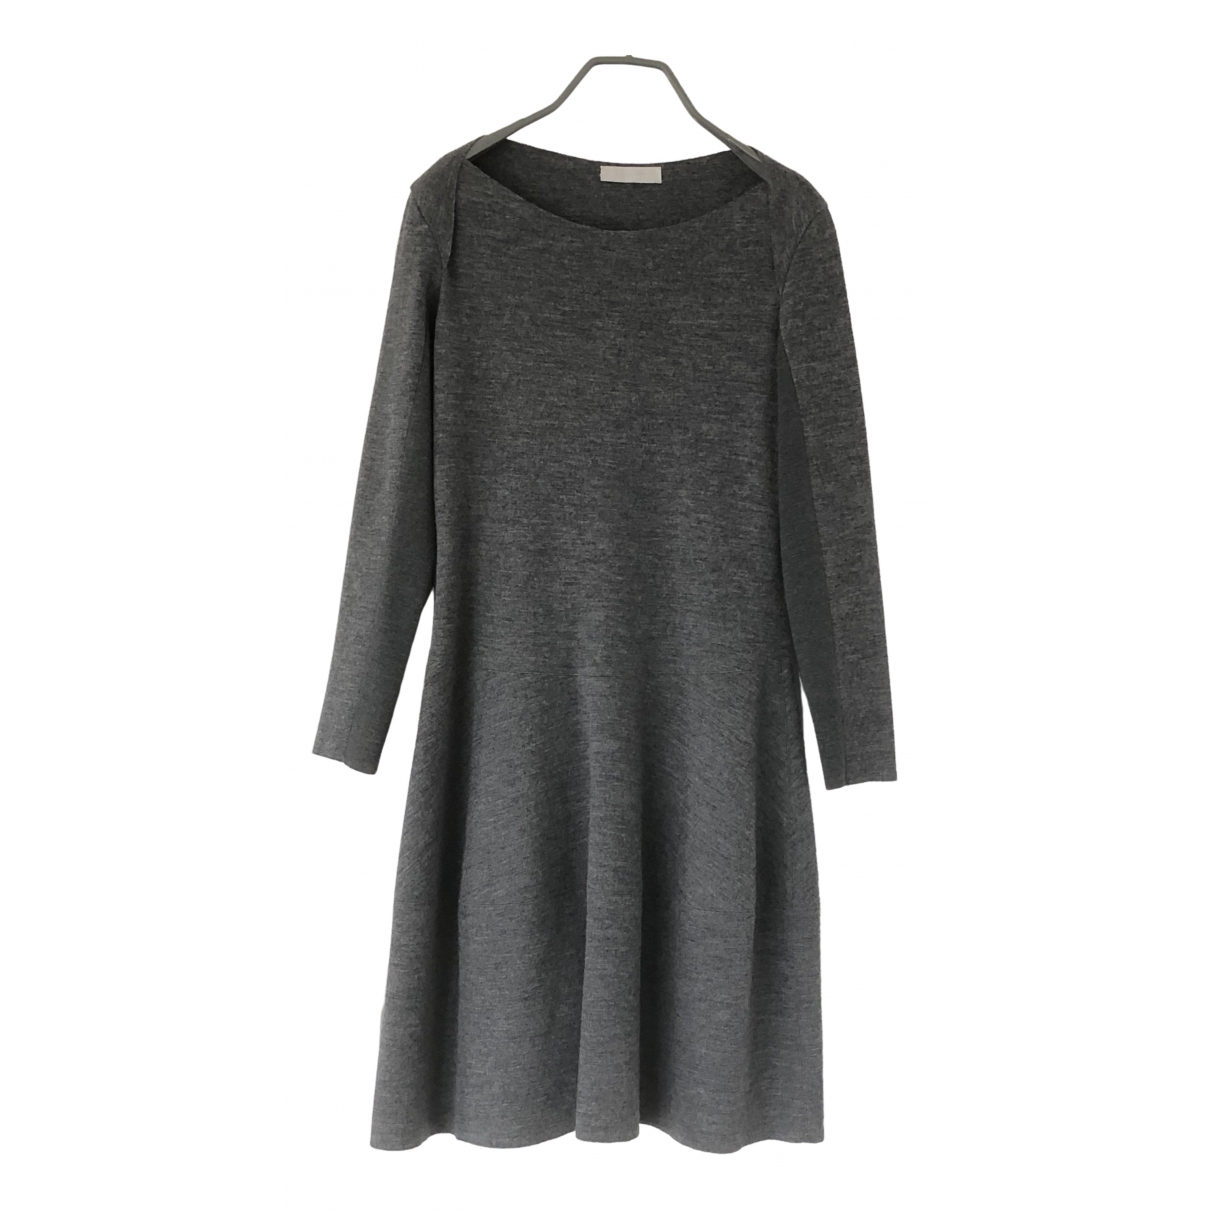 Nicole Farhi \N Grey Wool dress for Women S International